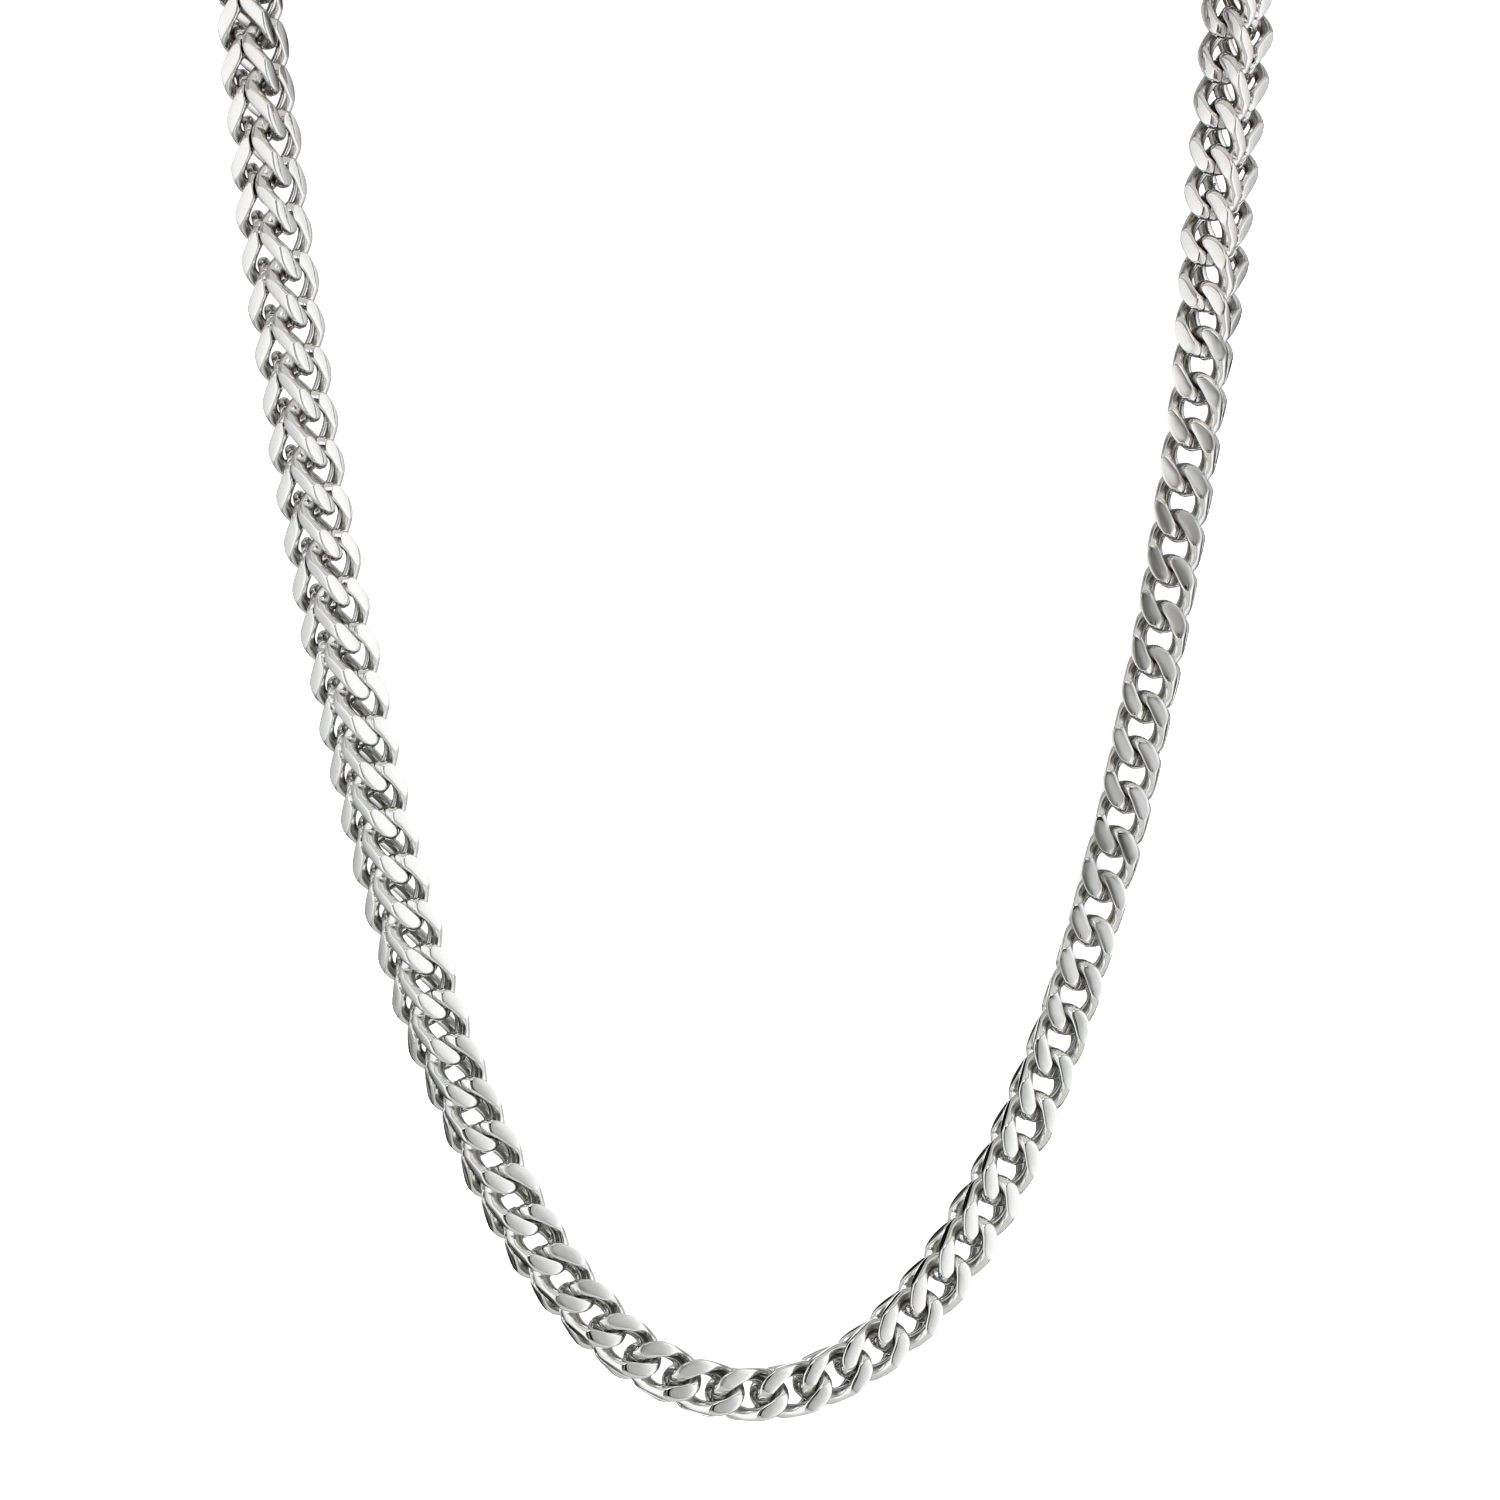 Metro Jewelry Stainless Steel Thin Foxtail Necklace